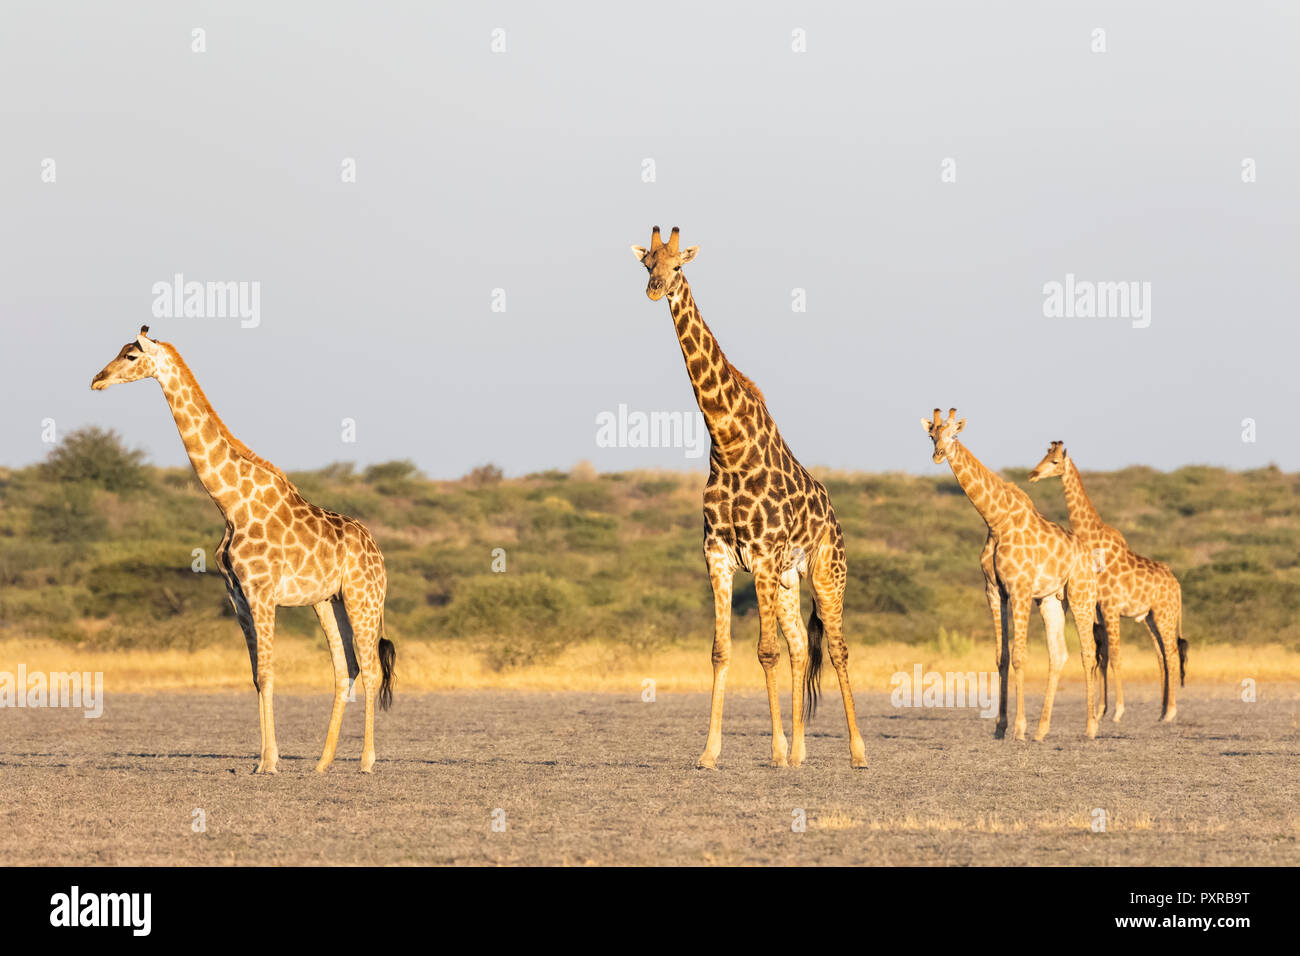 Botswana, Kalahari, Central Kalahari Game Reserve, Stock Photo